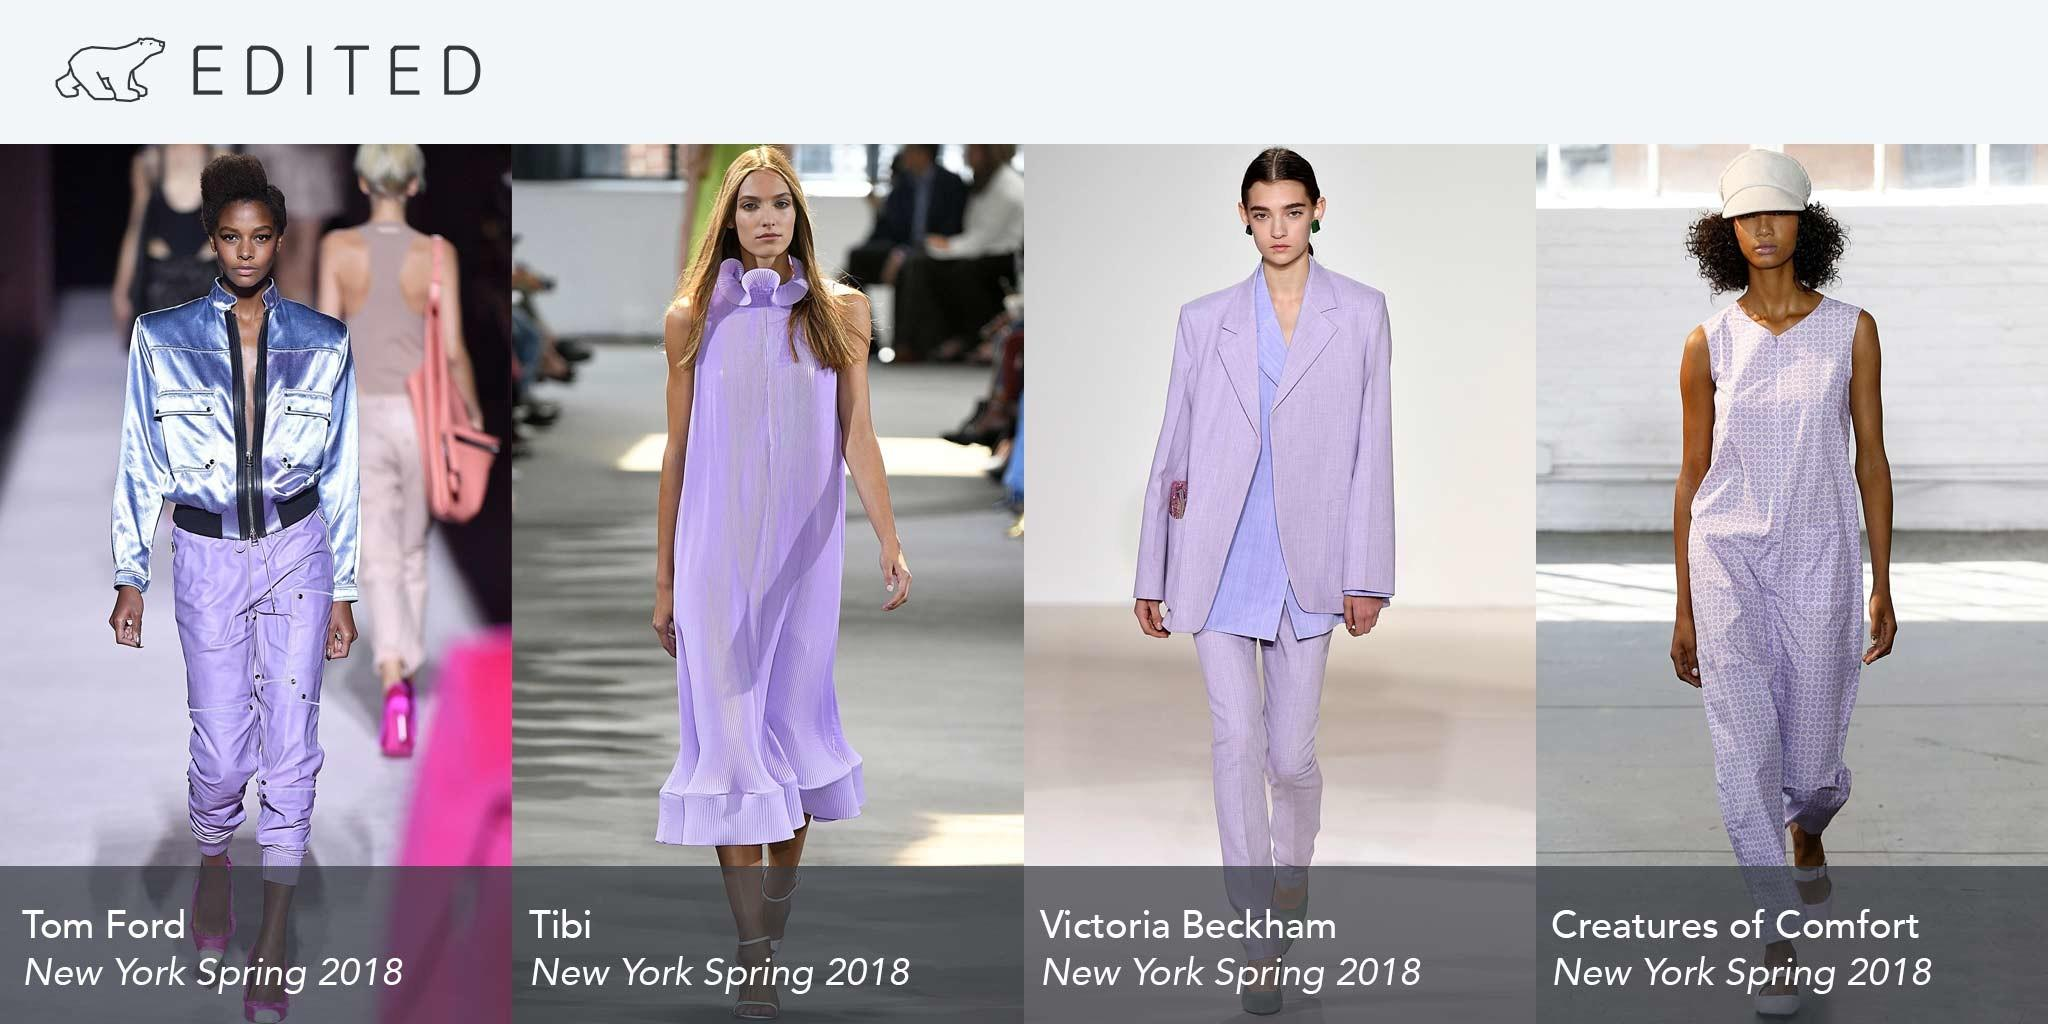 New York Fashion Week Data Spring 2018 Trends Edited